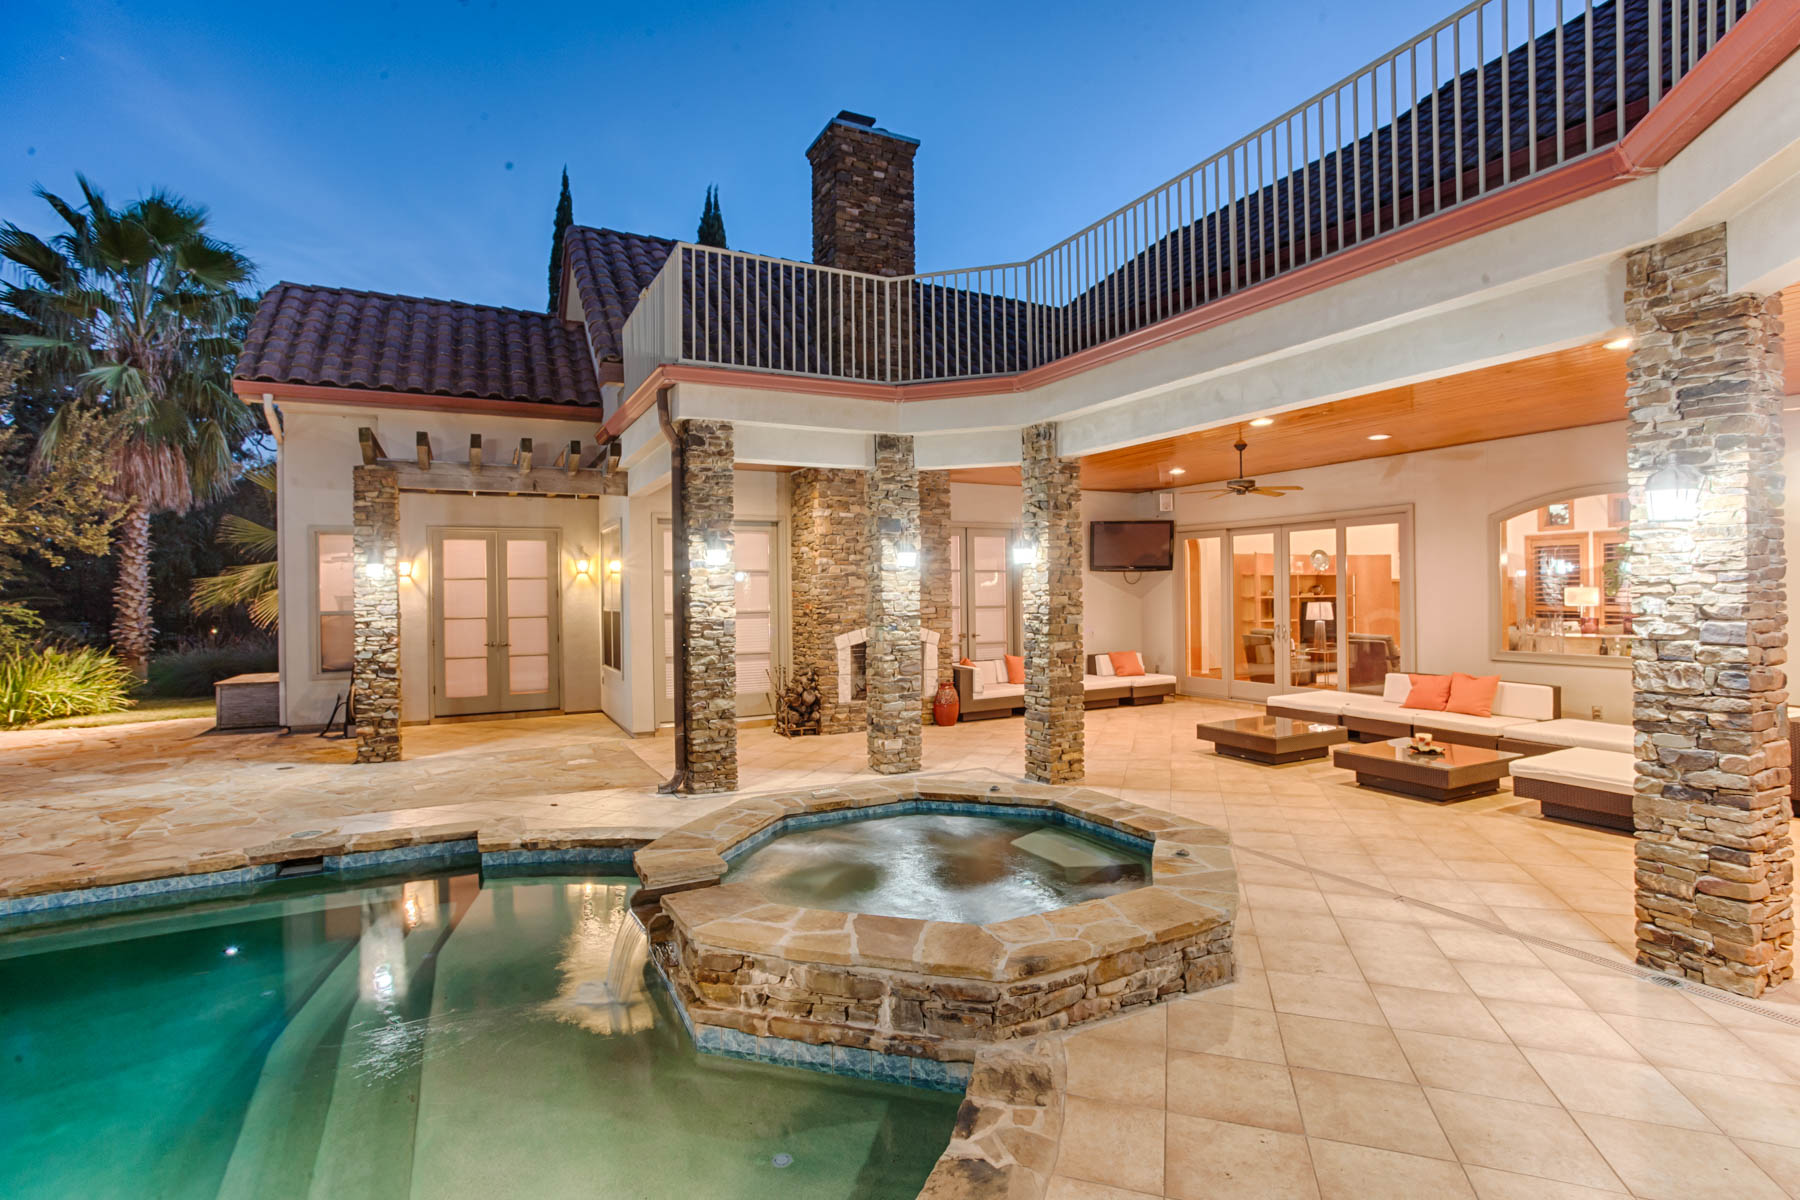 Additional photo for property listing at Contemporary Flair in Century Oaks Estates 22334 Angostura Blvd San Antonio, Texas 78261 United States